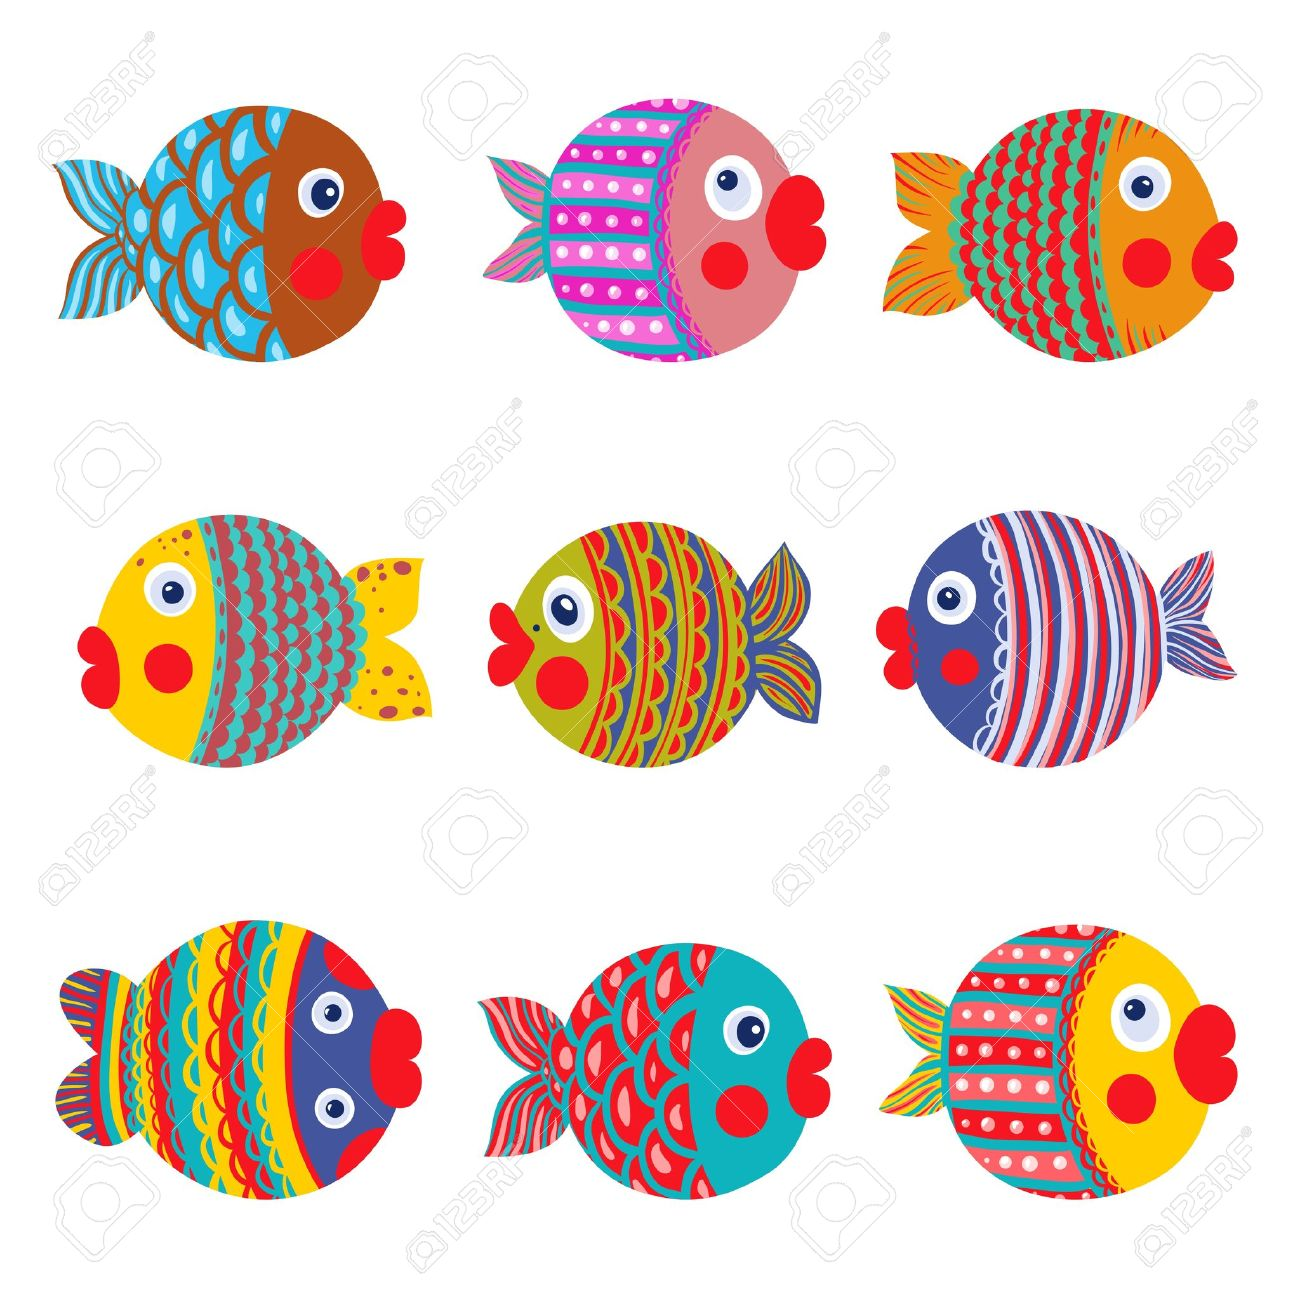 10 598 fishes ornament cliparts stock vector and royalty free